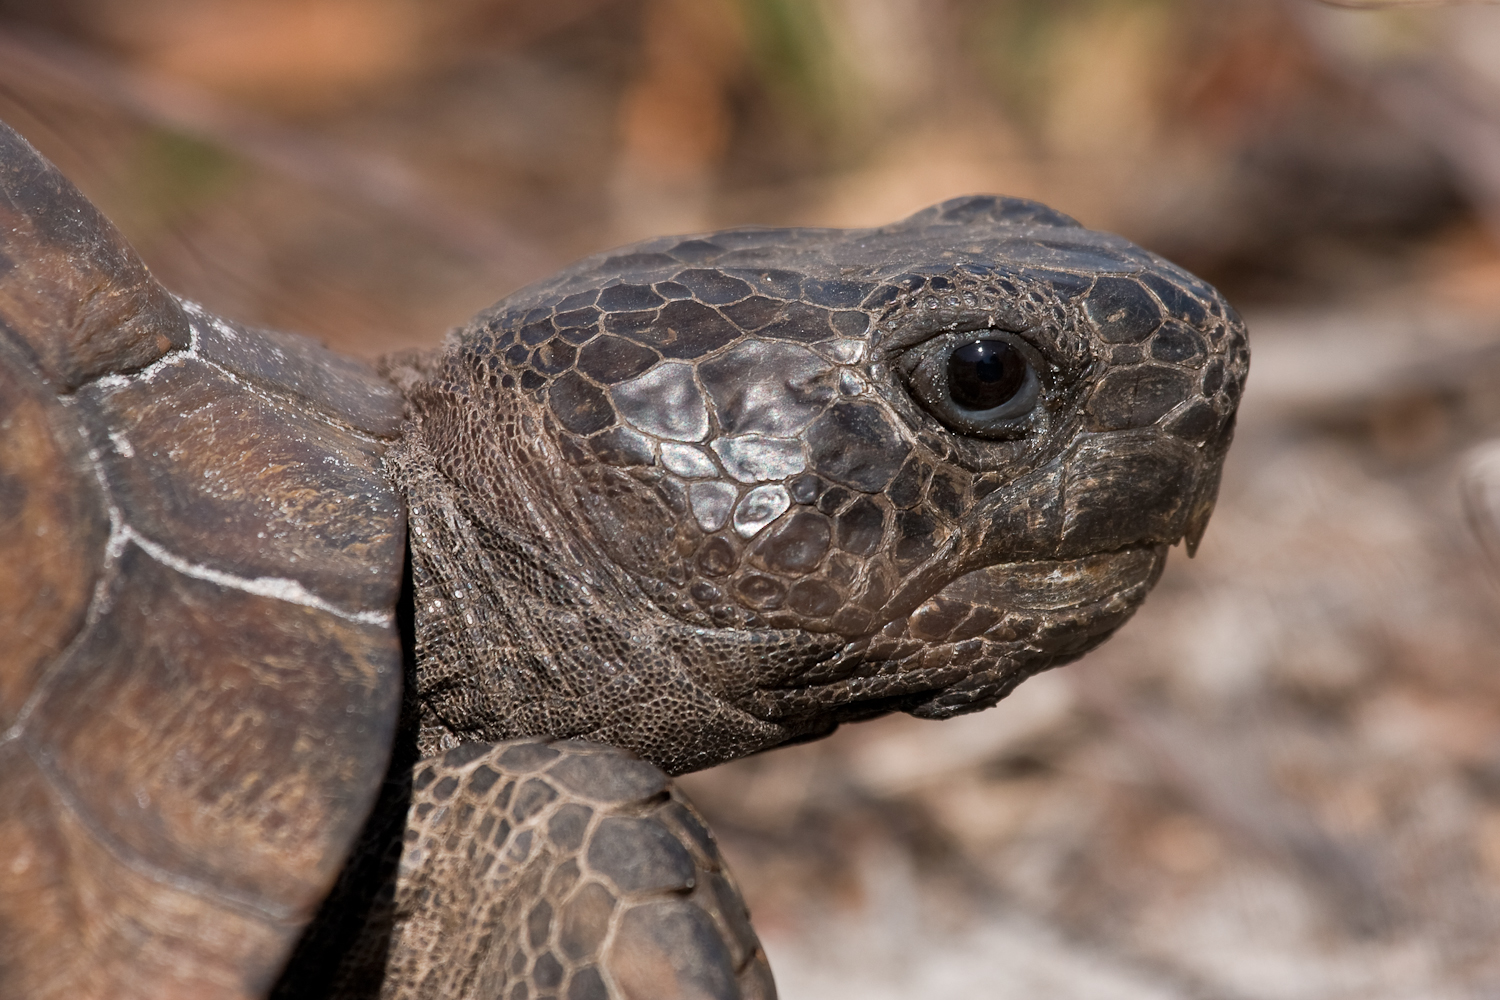 Gopher Tortoise and Alligator at Dawn